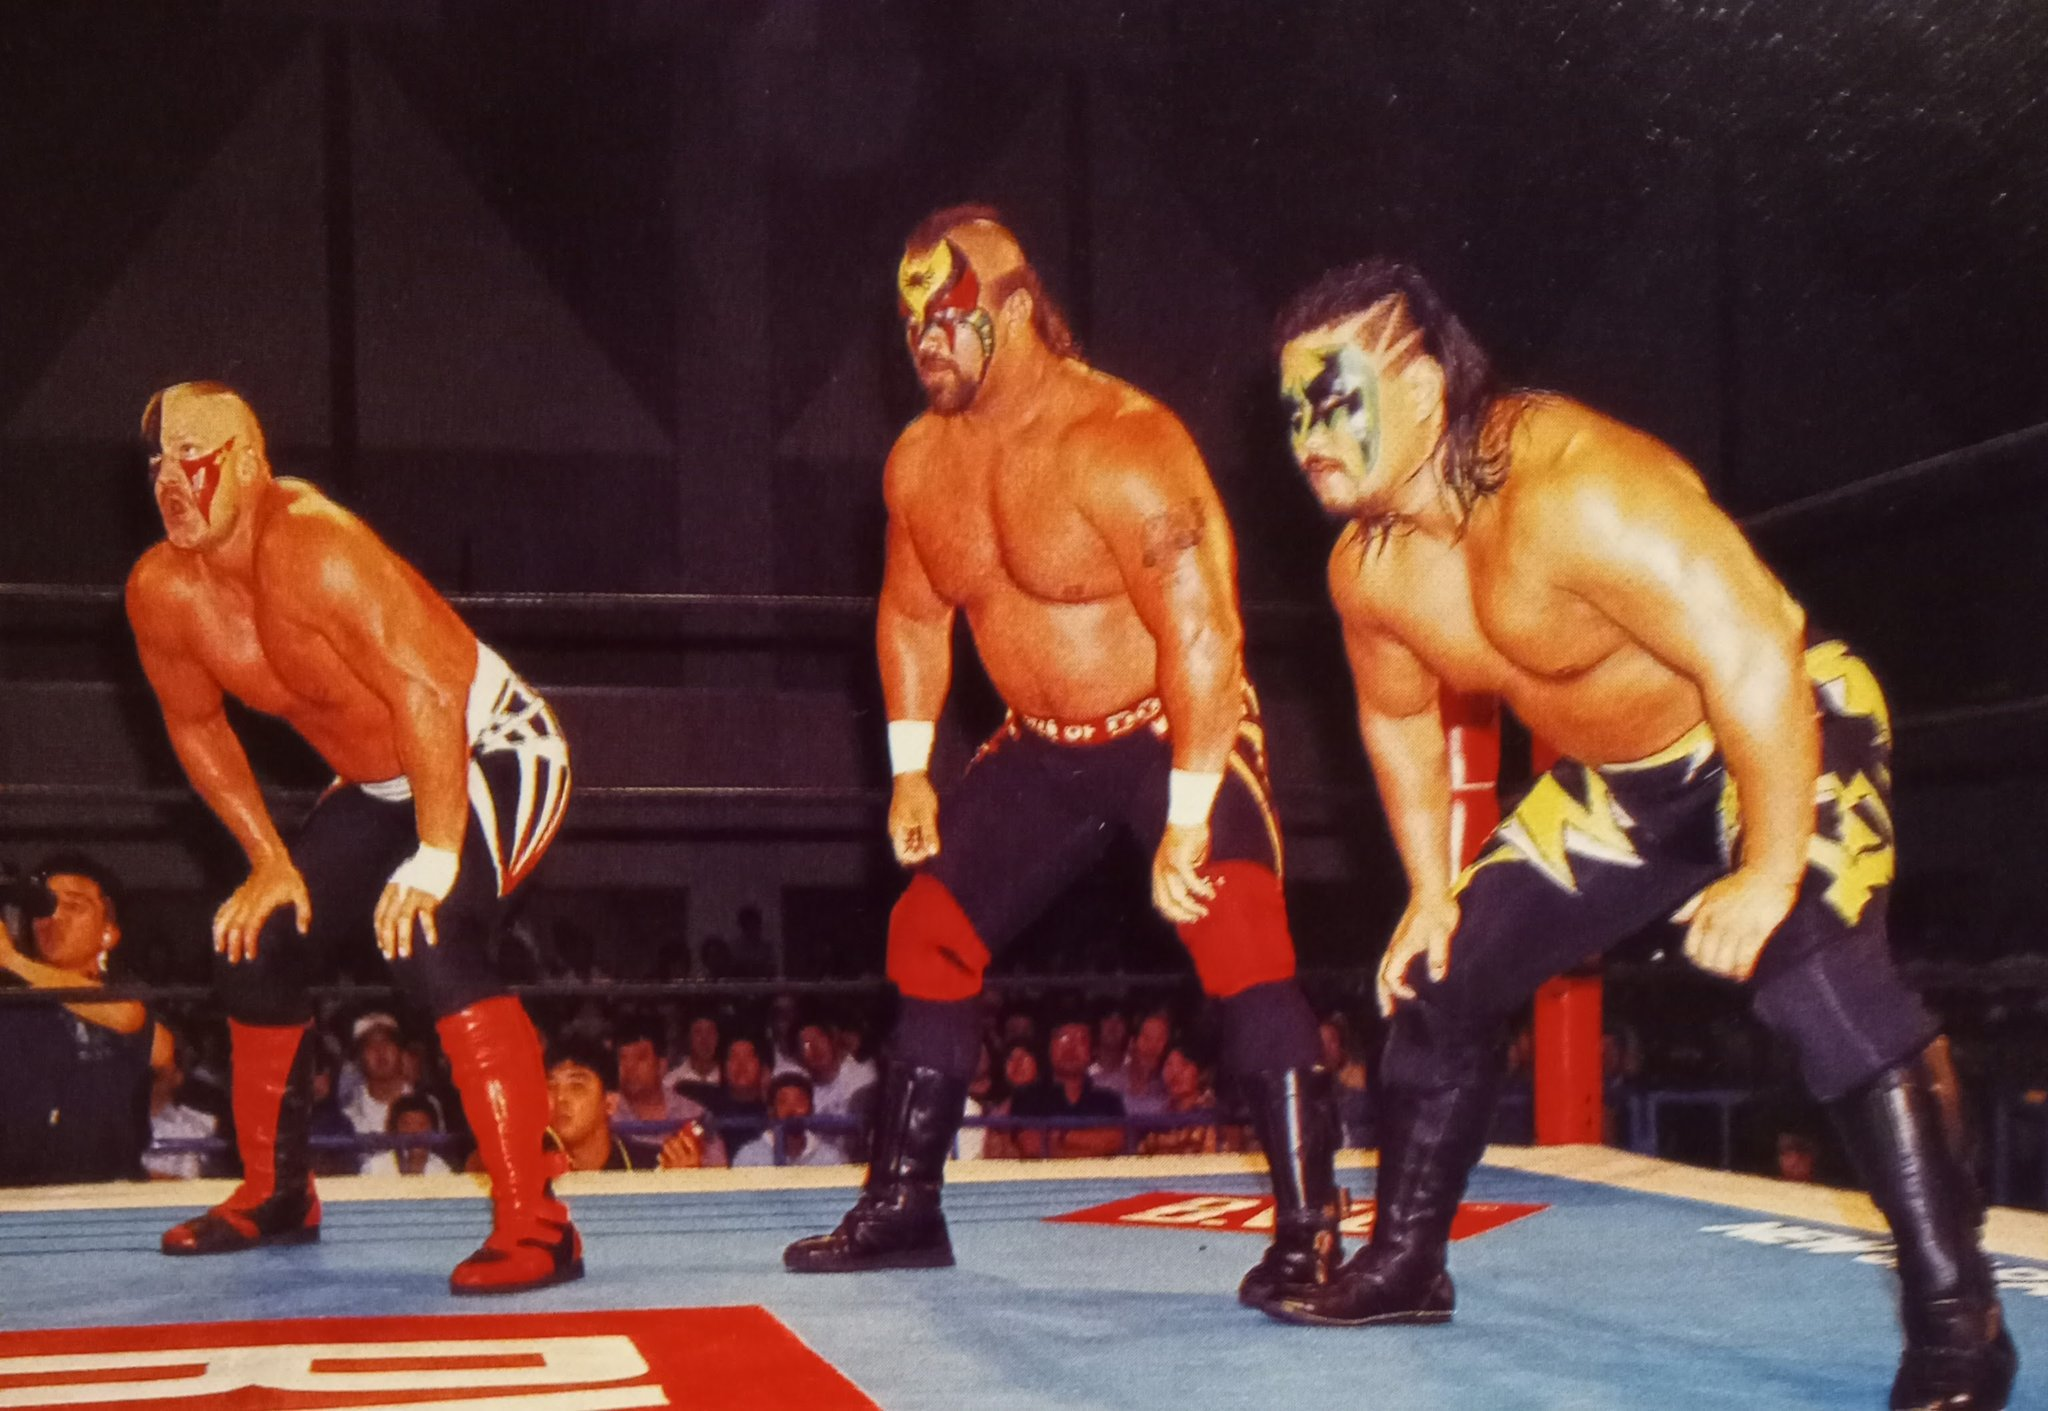 """Rasslin' History 101 on Twitter: """"After leaving WCW,The Road Warriors teamed up with """"Power Warrior"""" Kensuke Sasaki all throughout 1996 for New Japan Pro Wrestling.Hawk,Animal and Sasaki won a huge percentage of"""